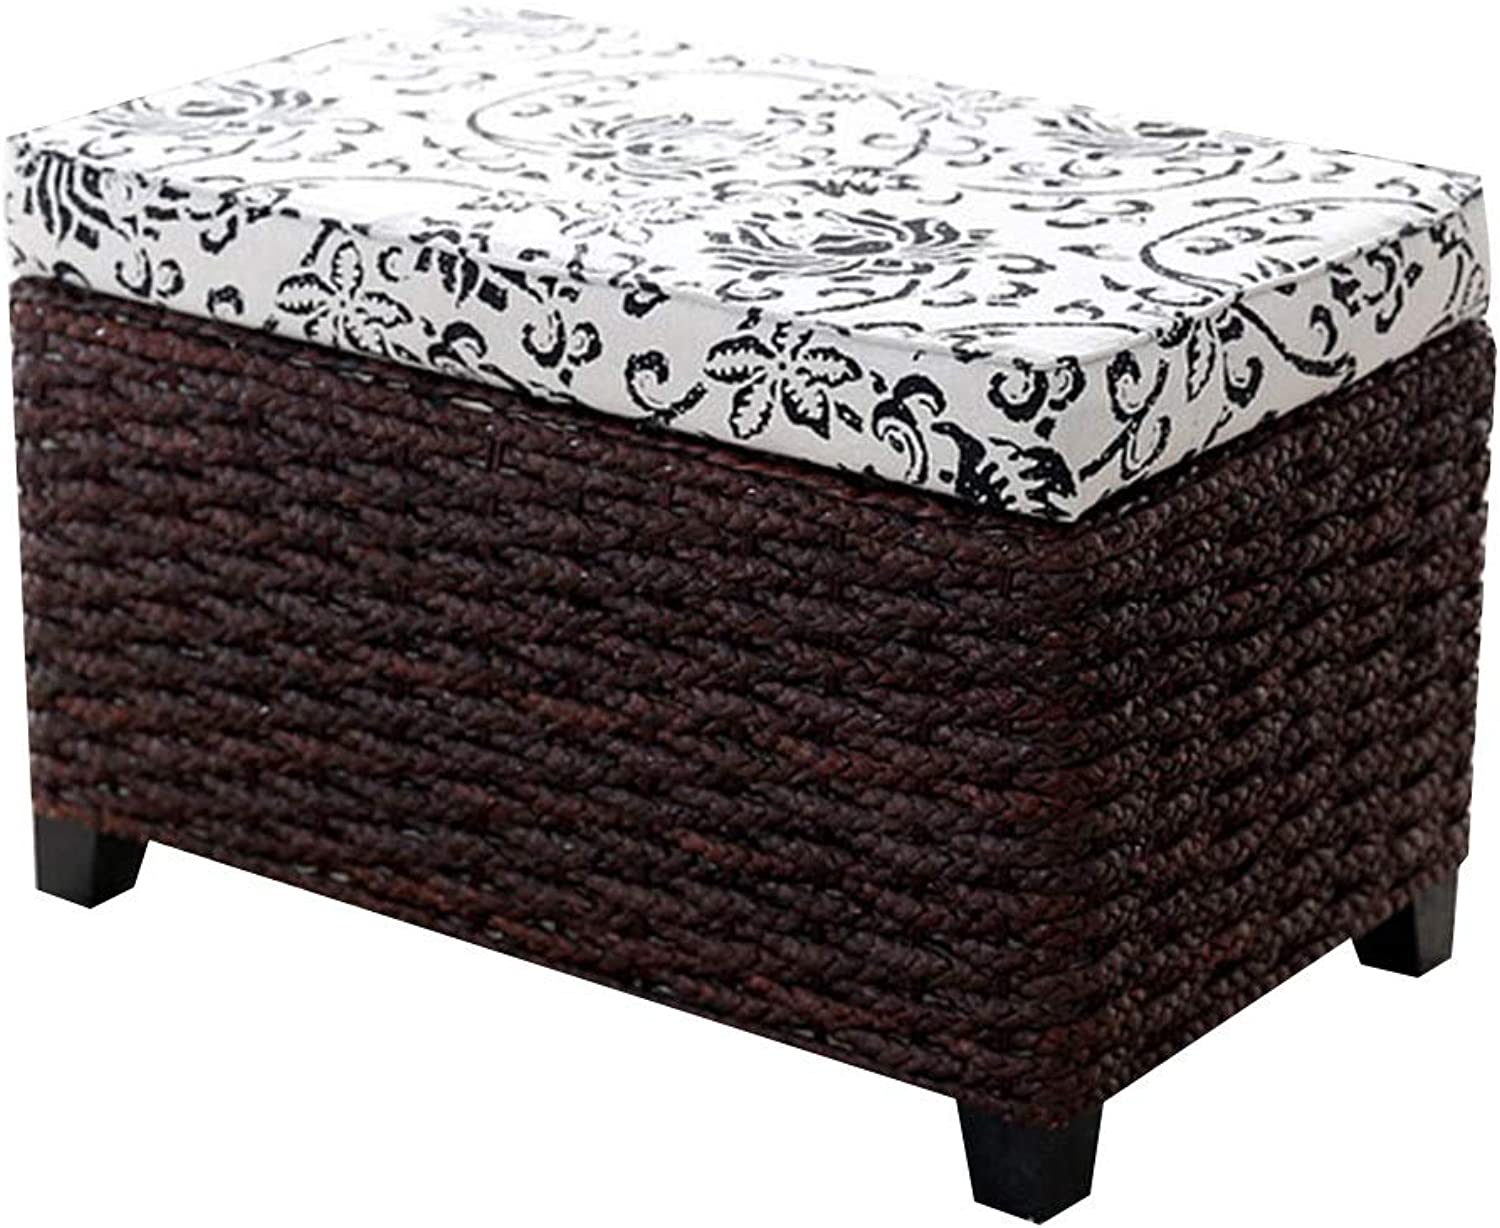 LSXIAO Pouffes And Footstools Storage Stool Large Capacity Solid Wood Frame Natural Plants Hand Made Seat Cover Removable and Washable, 5 Sizes (color   Brown A, Size   50x30x31cm)